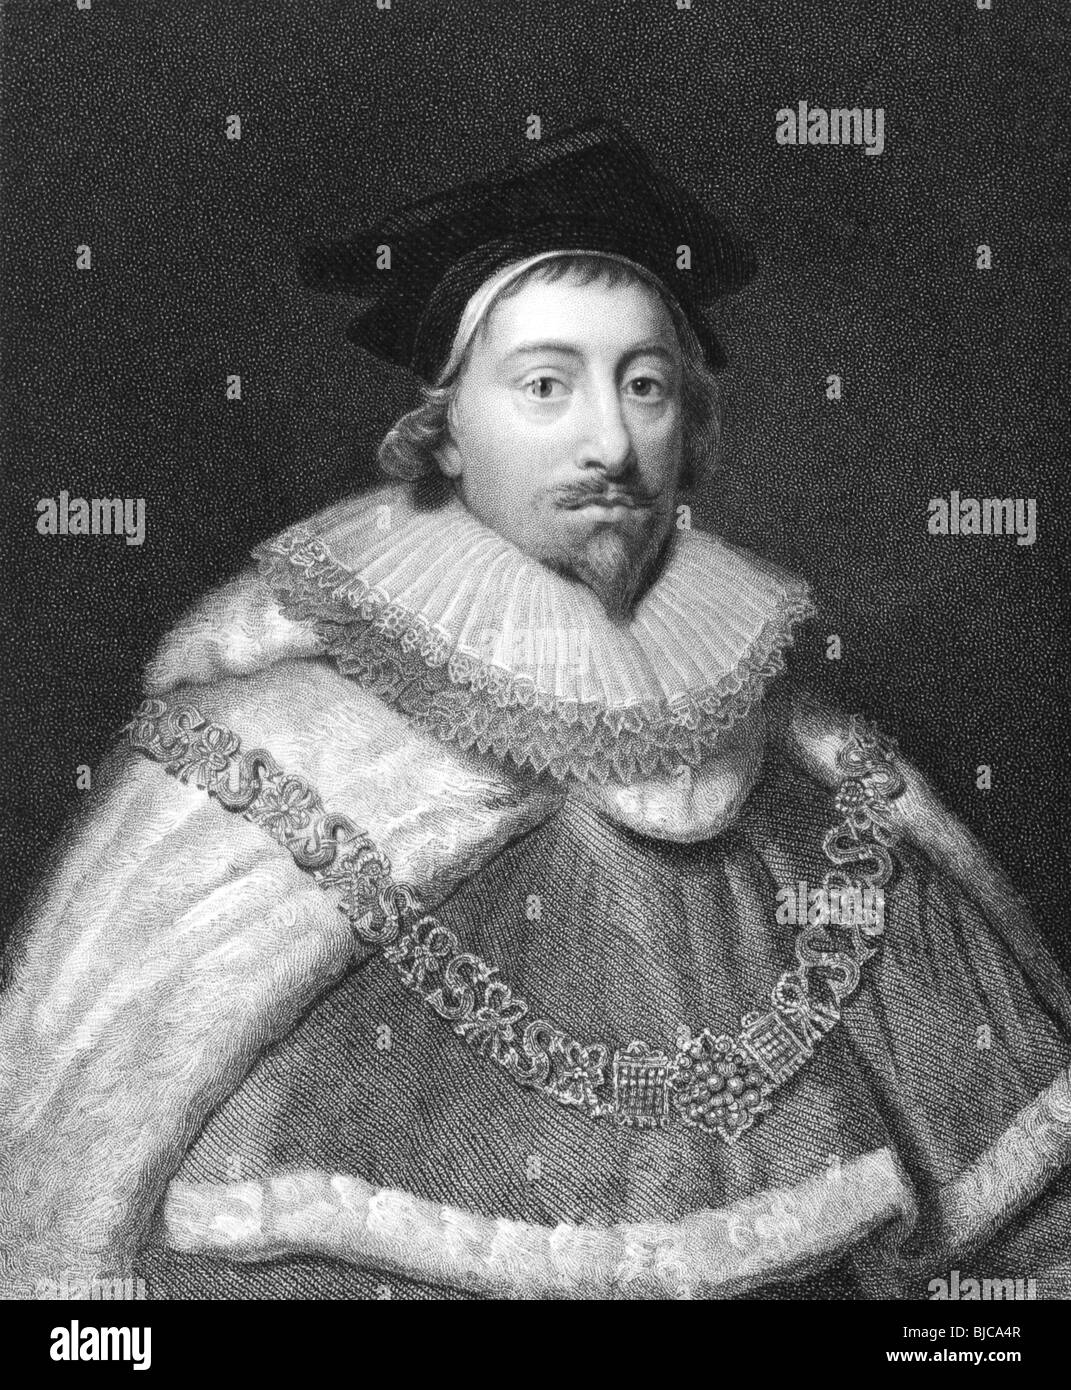 Edward Coke (1552-1634) on engraving from the 1800s.English jurist and Member of Parliament. - Stock Image